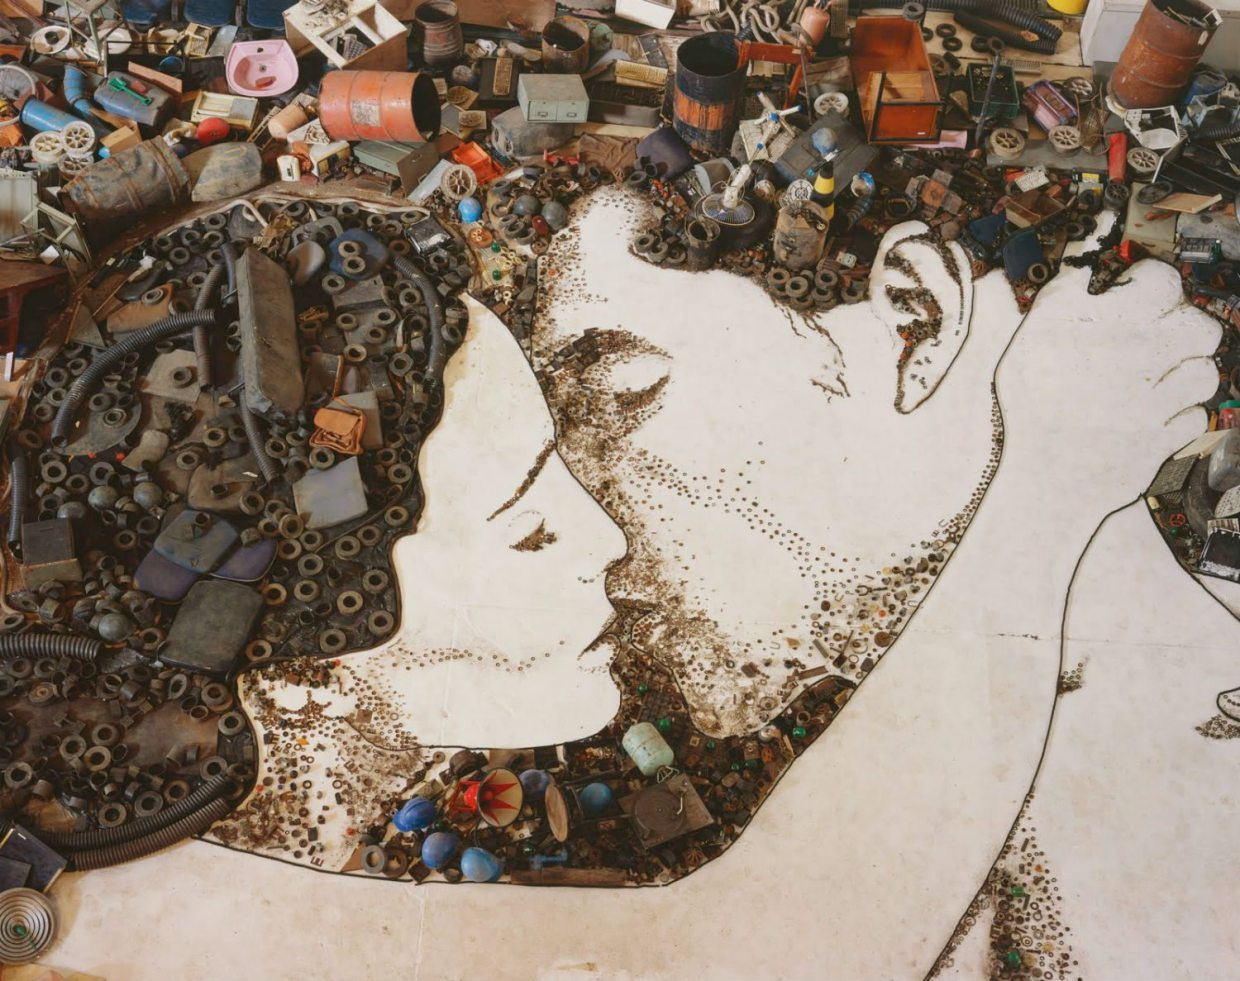 Image: Garbage laid out on the floor to make a huge image of people kissing